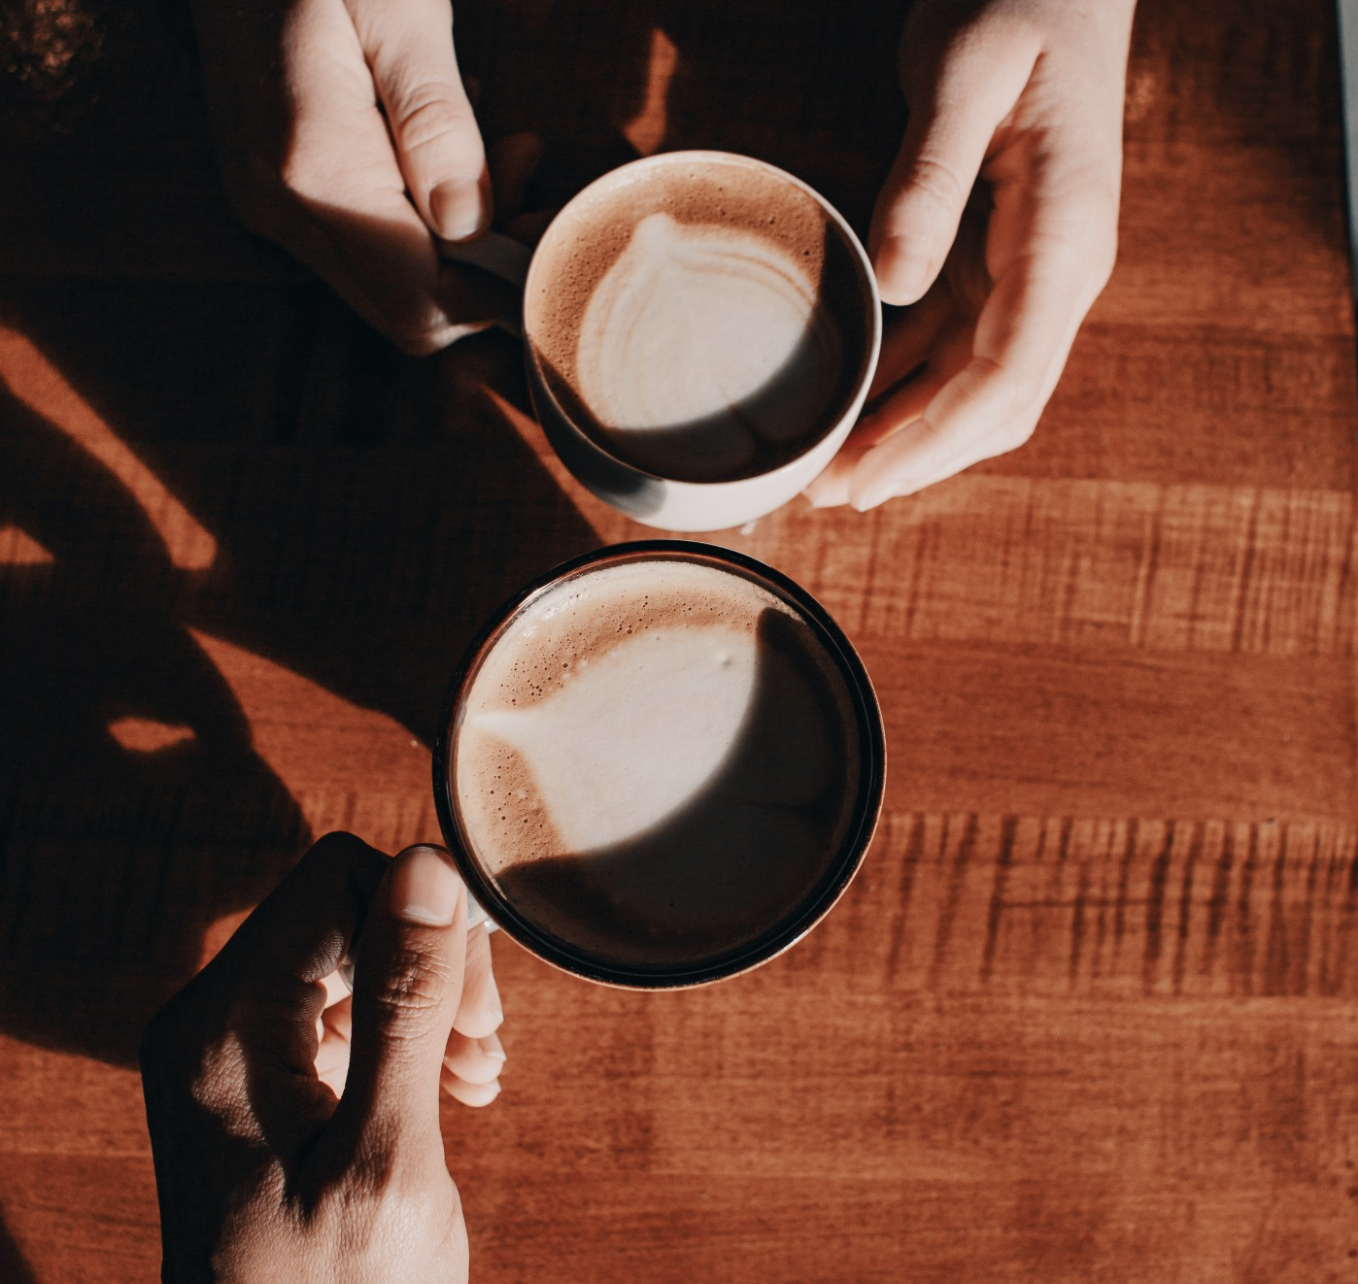 Two hands holding coffee cups on a table.